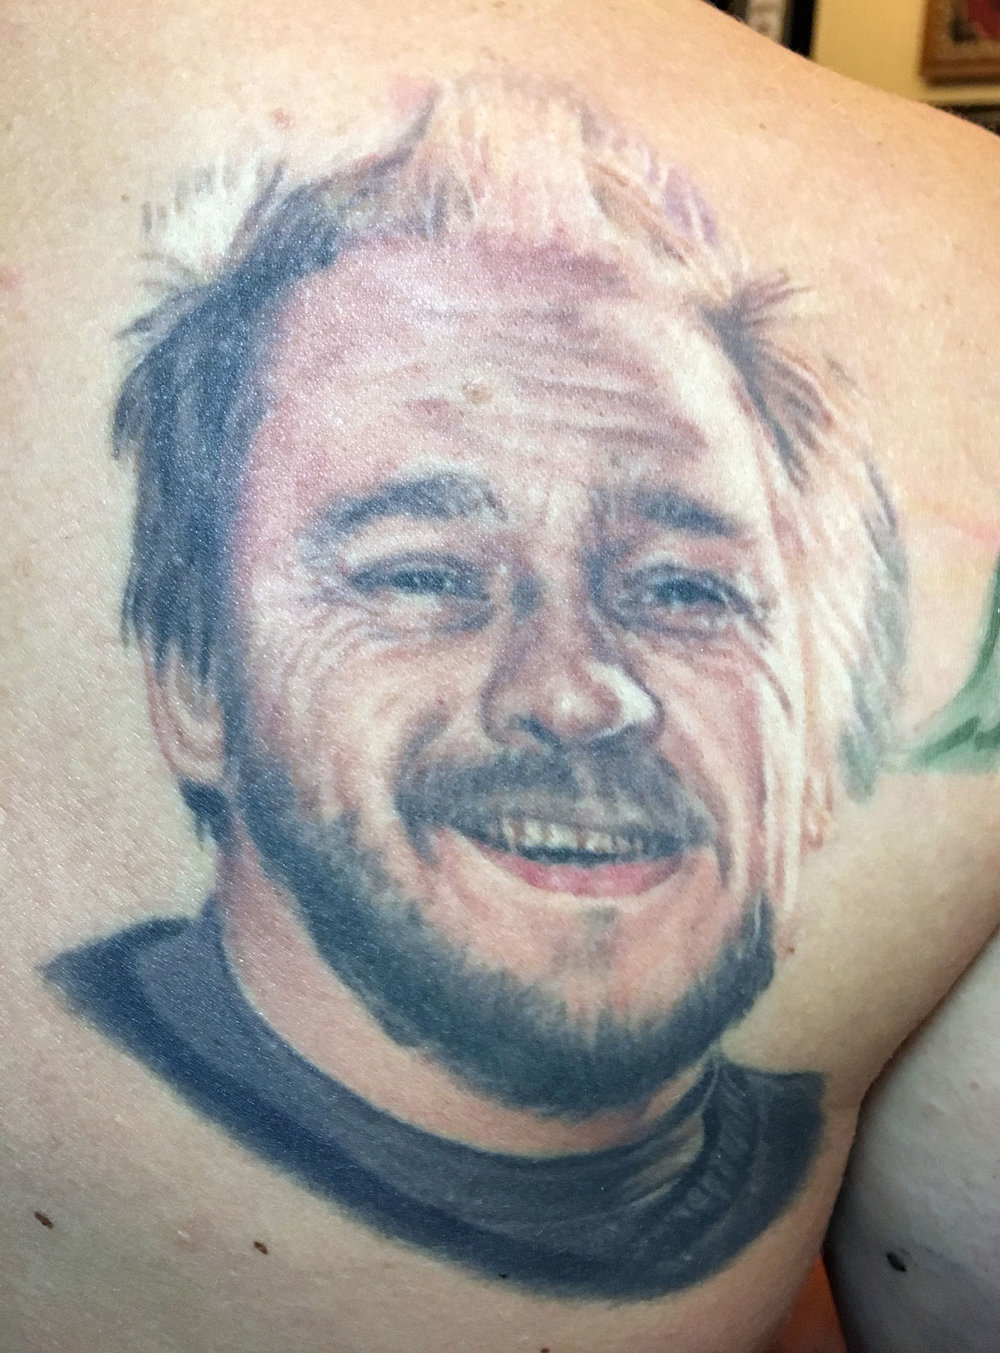 Color Portait Memorial Tattoo of Father, (tattoo is healed and 4 years old in this photo)